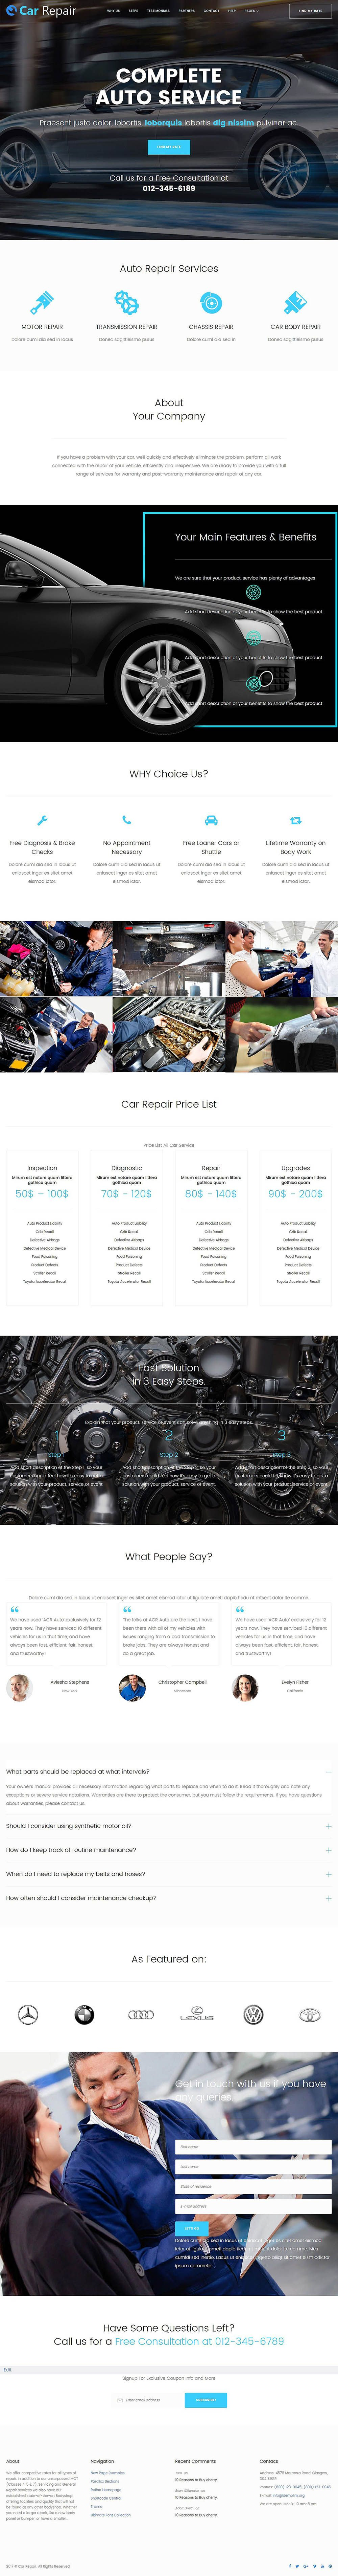 Cherry - Multi Purpose WordPress Theme Screenshot 6